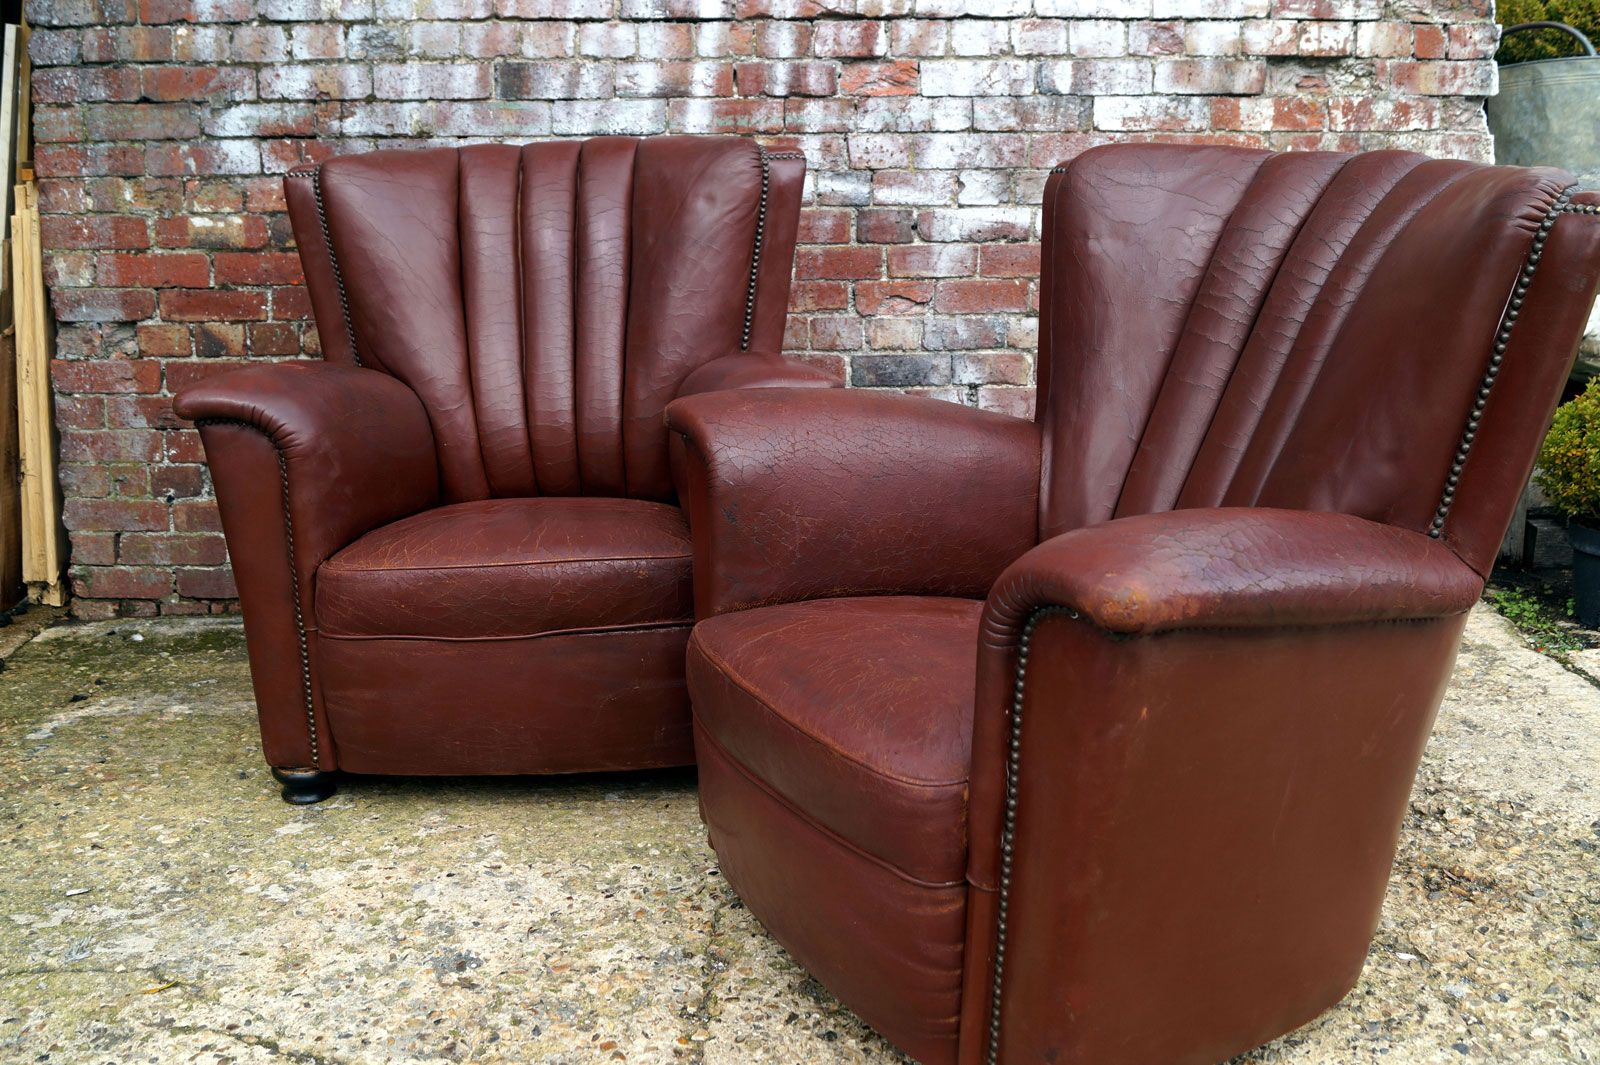 Italian Leather Chairs from Artifort, 1930s, Set of 2 for sale at Pamono